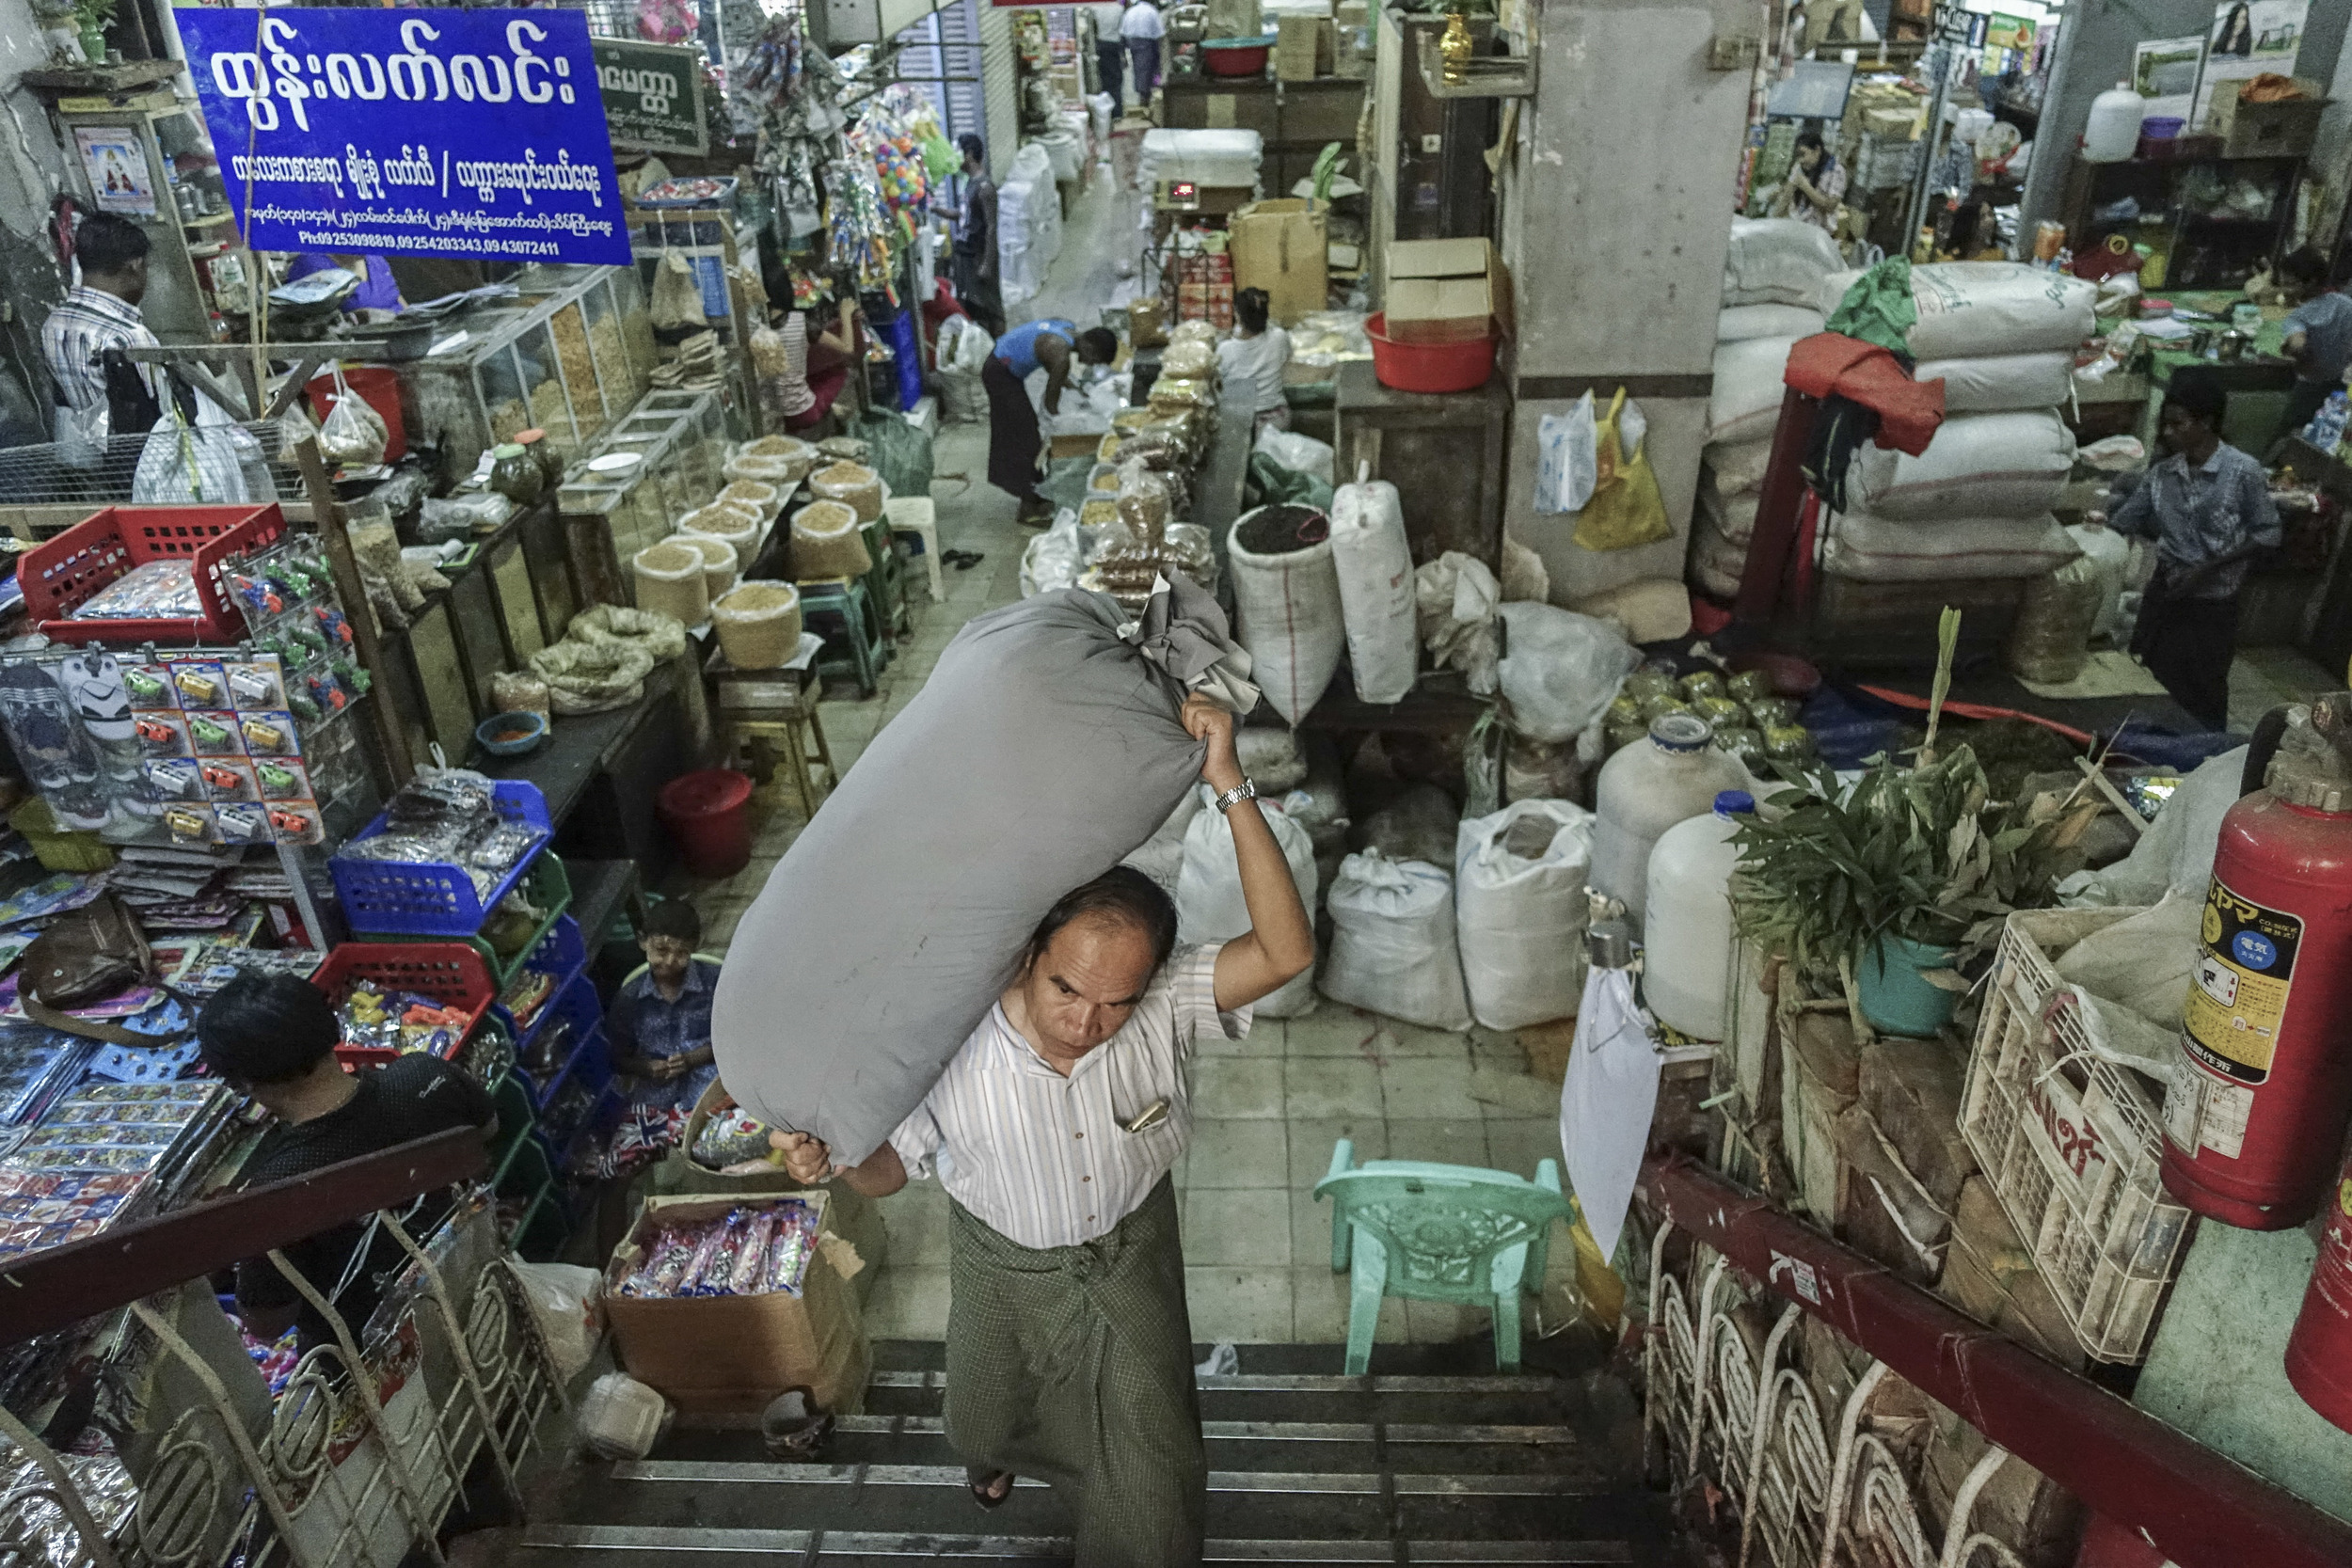 A man walks up the steps at the Thein Gyi Zay wholesale market.